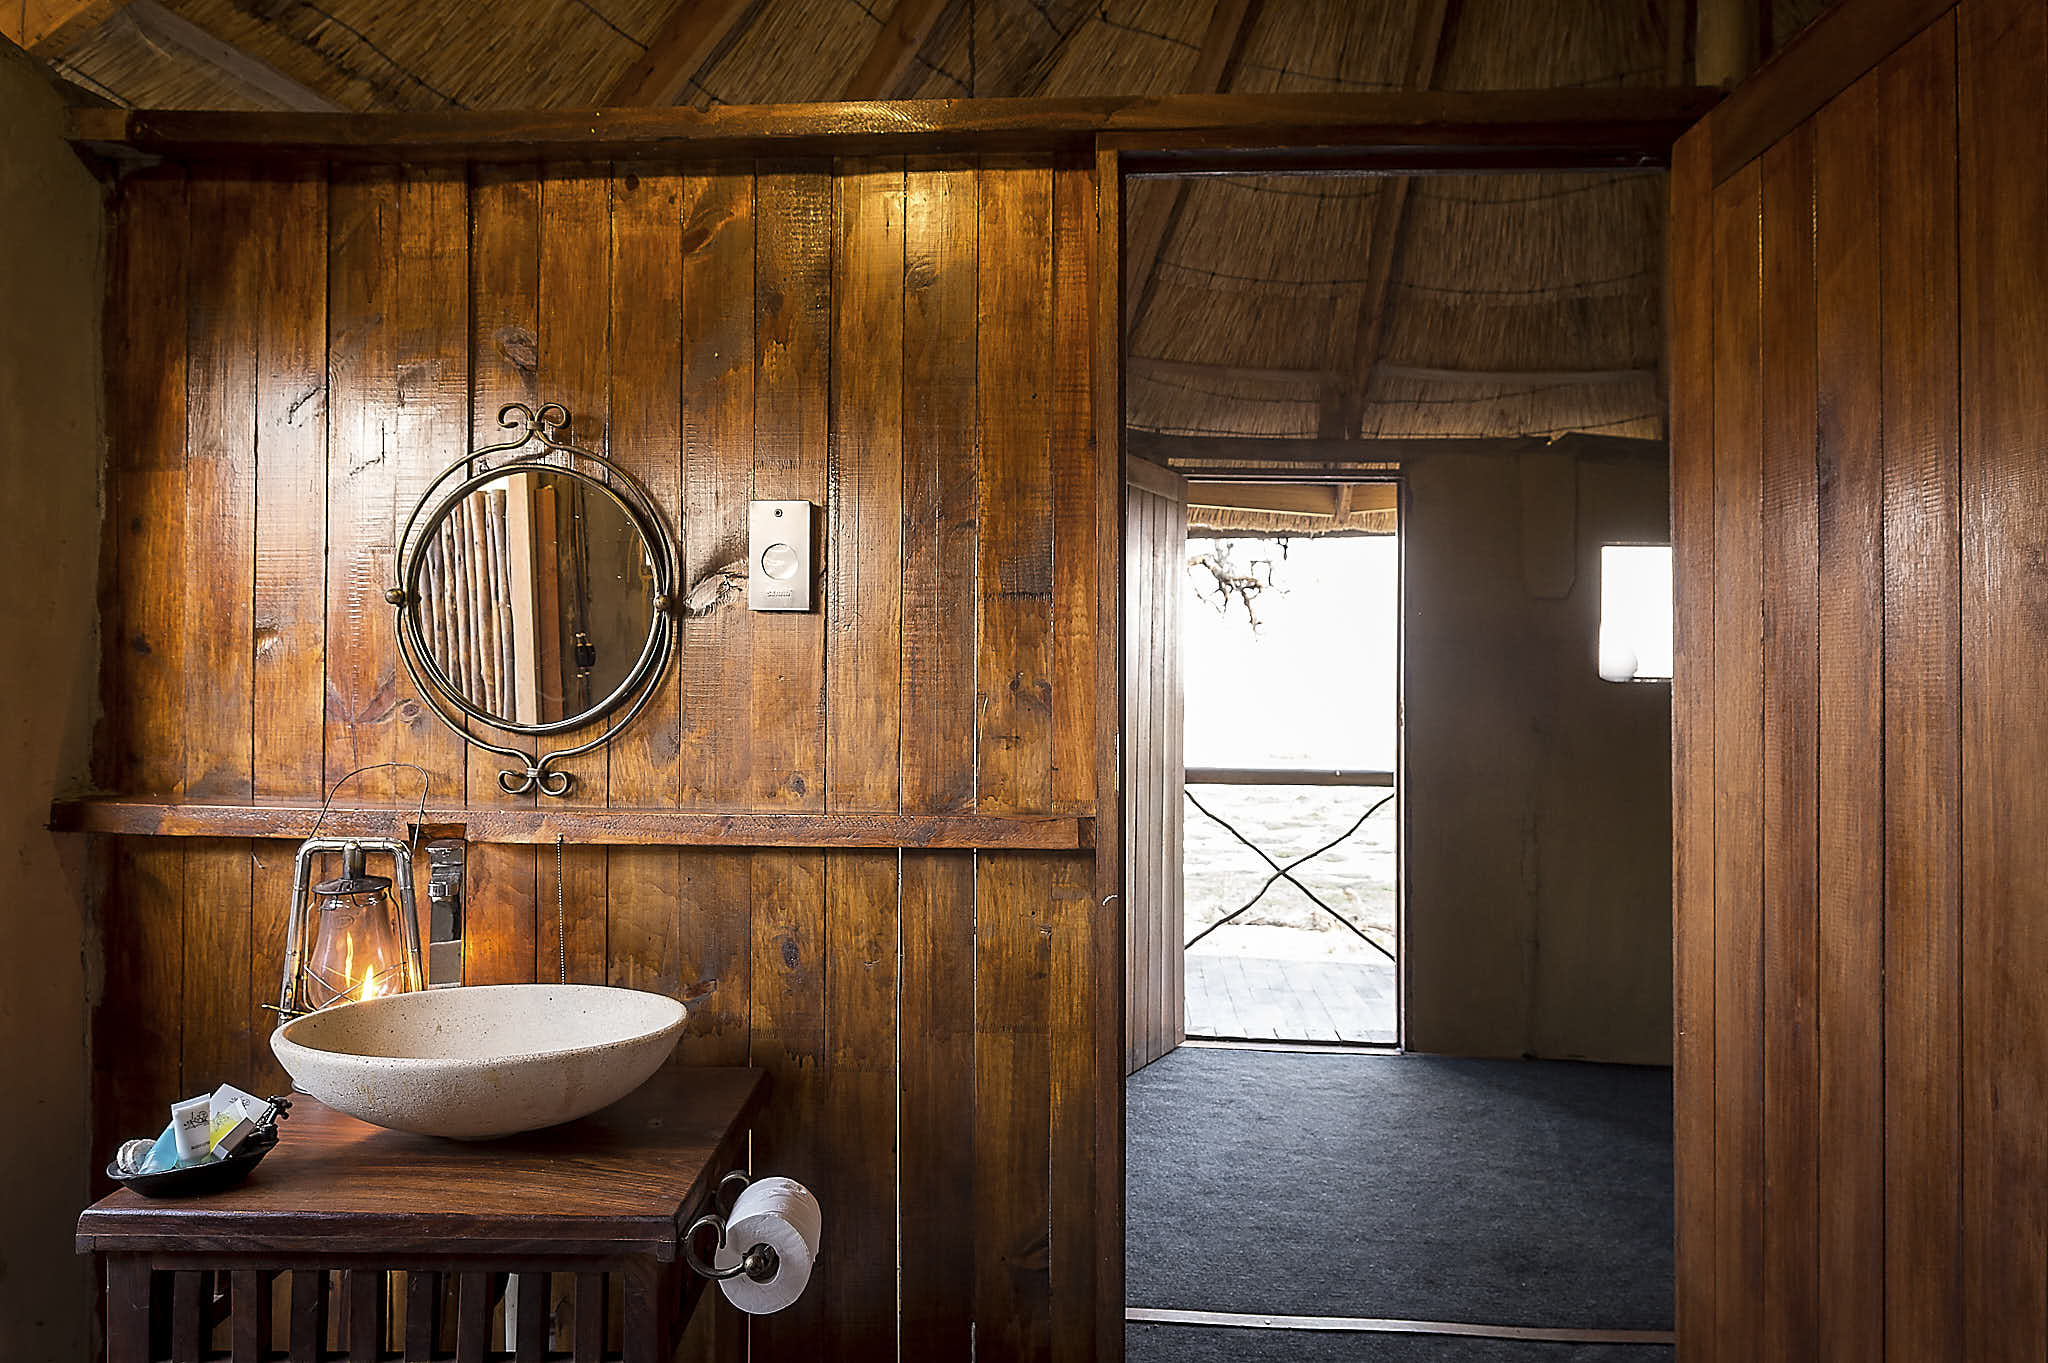 A getaway! - We offer all the comforts you may need to feel refreshed during your stay with us. Enjoy having your shower under the African starlit sky. The simple features we have intertwined in our safari getaway will make your stay magical and memorable.